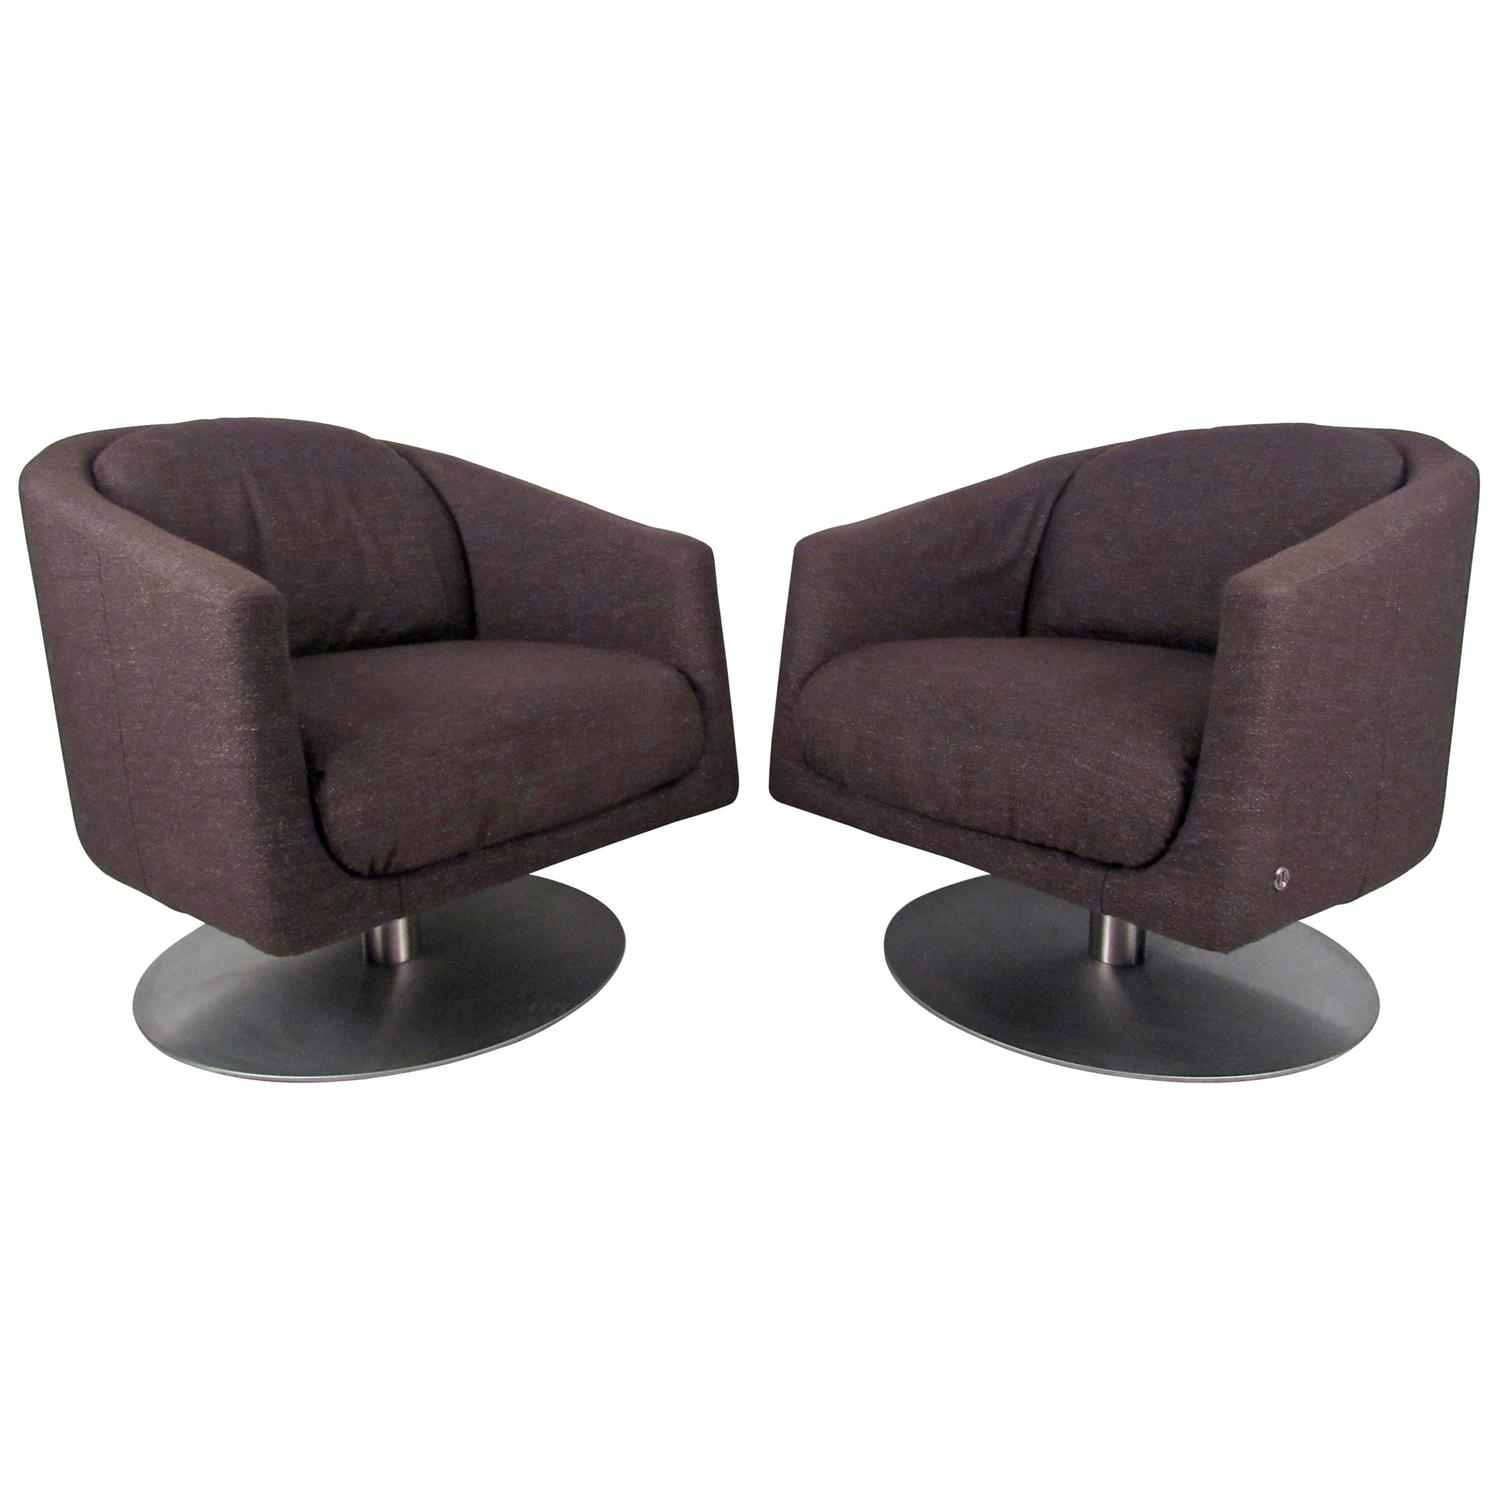 natuzzi lounge chair best dorm room chairs pair of mid century swivel at 1stdibs